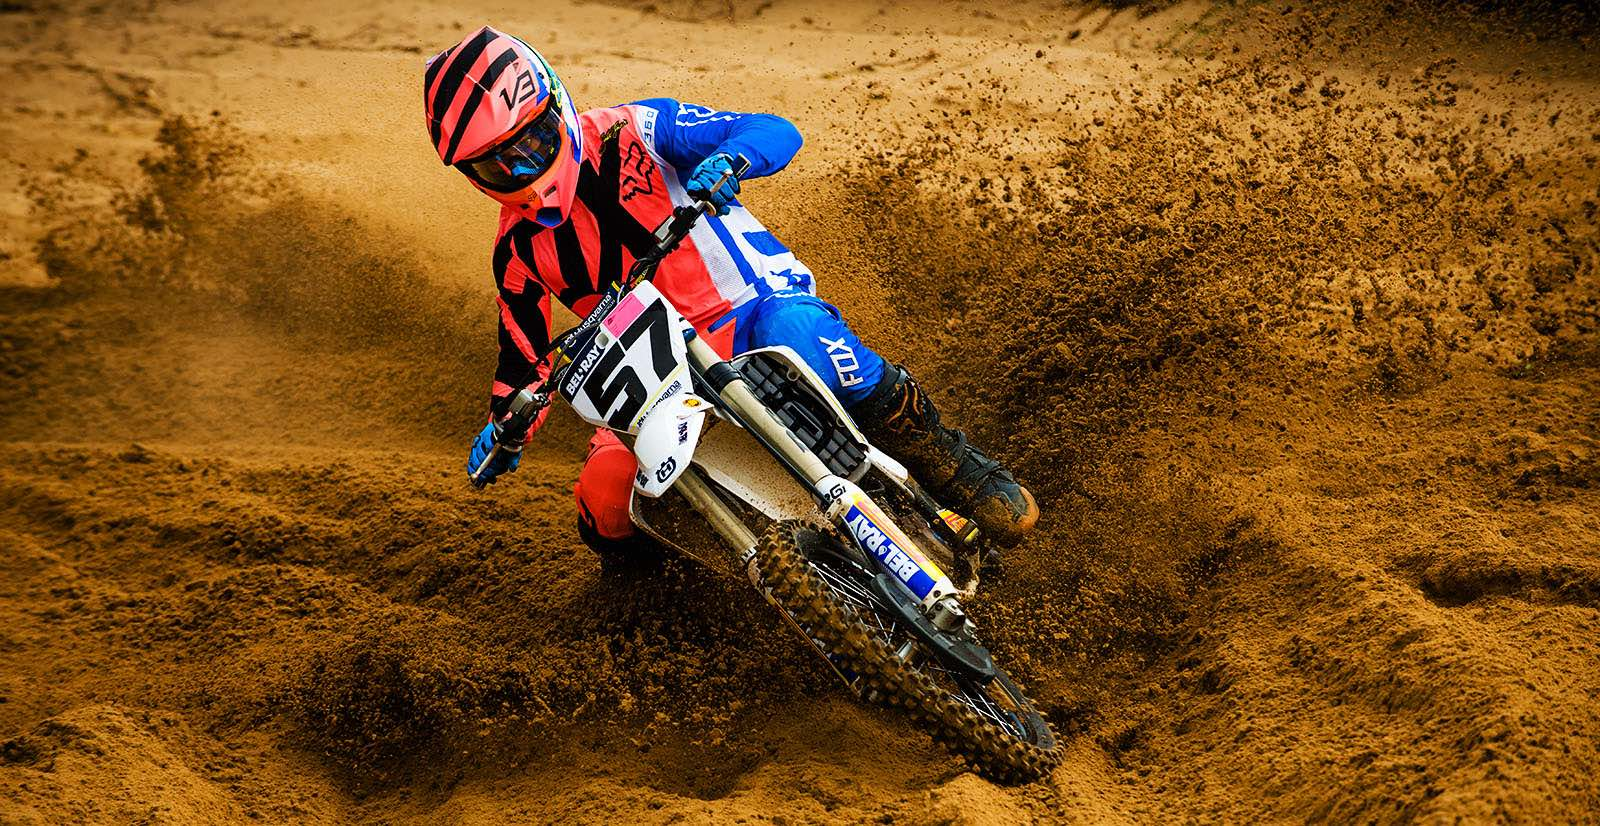 Maddy Malan racing his way to victory at Round 1 of the SA MX Nationals